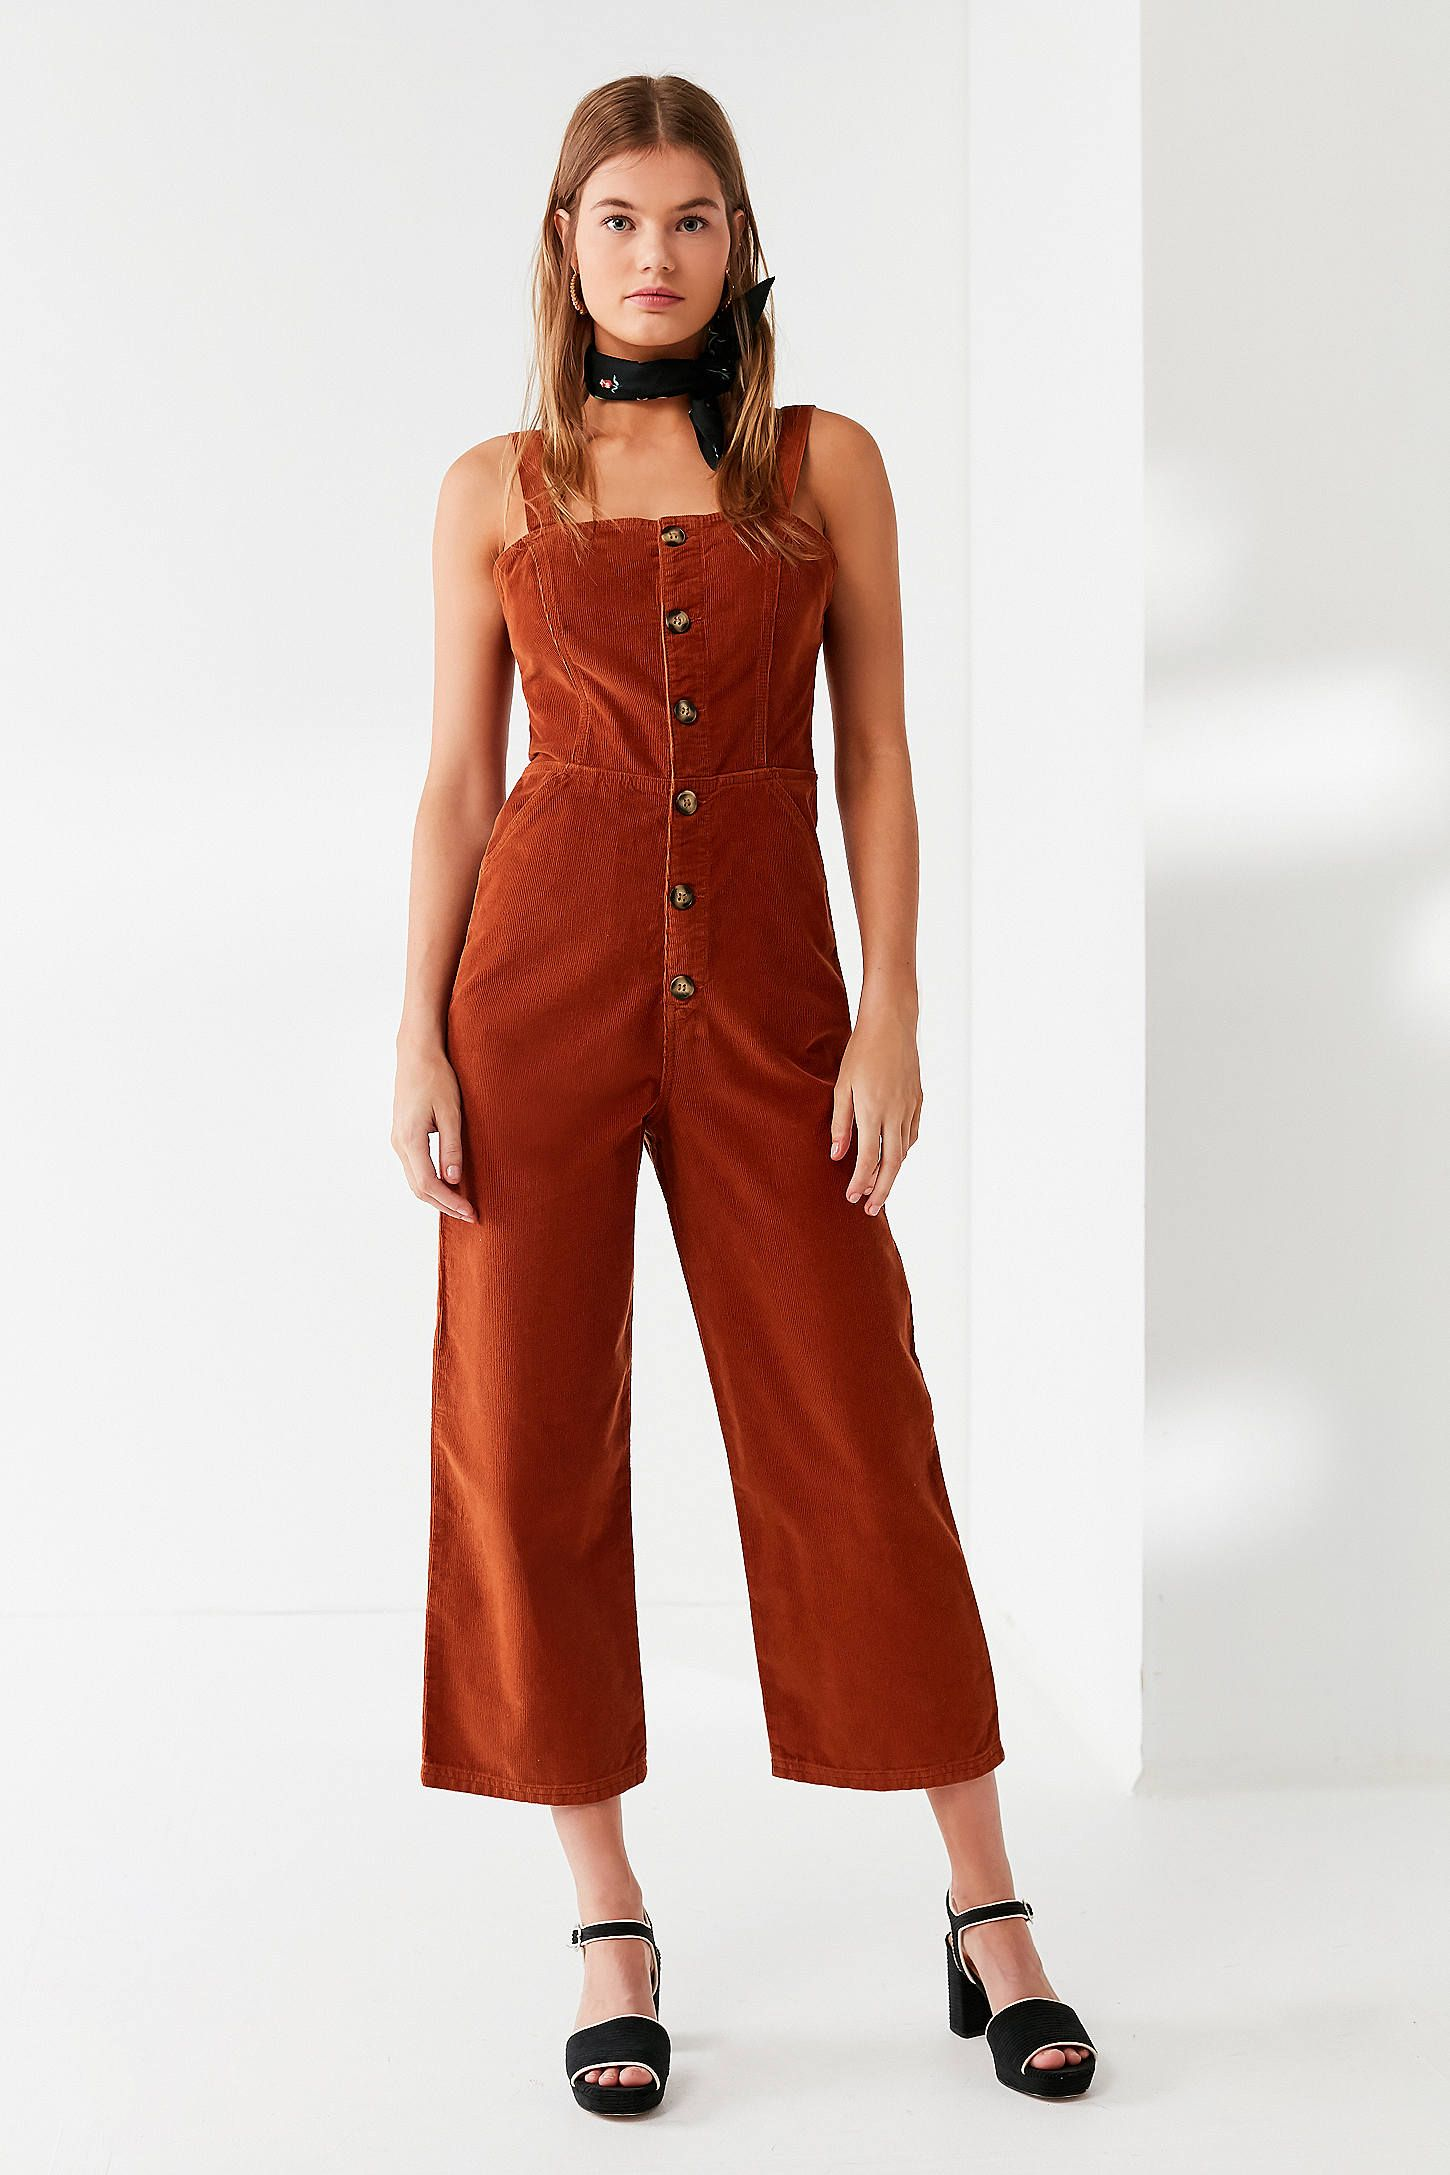 Uo corduroy dungaree jumpsuit latest styles urban outfitters and